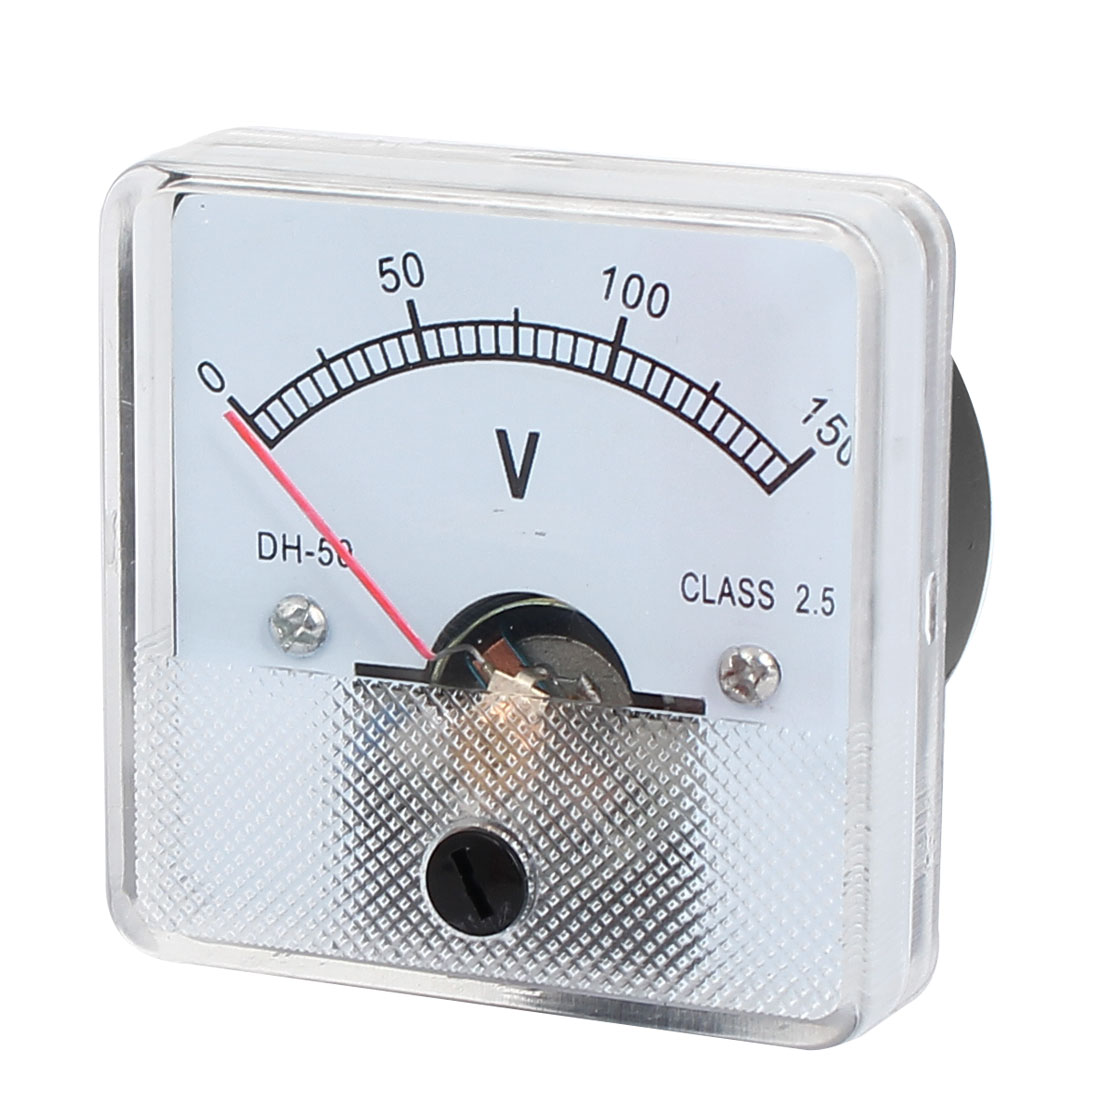 DH-50 DC 0-150V Class 2.5 Accuracy Square Shaped Analog Panel Volt Meter Voltmeter Gauge Voltage